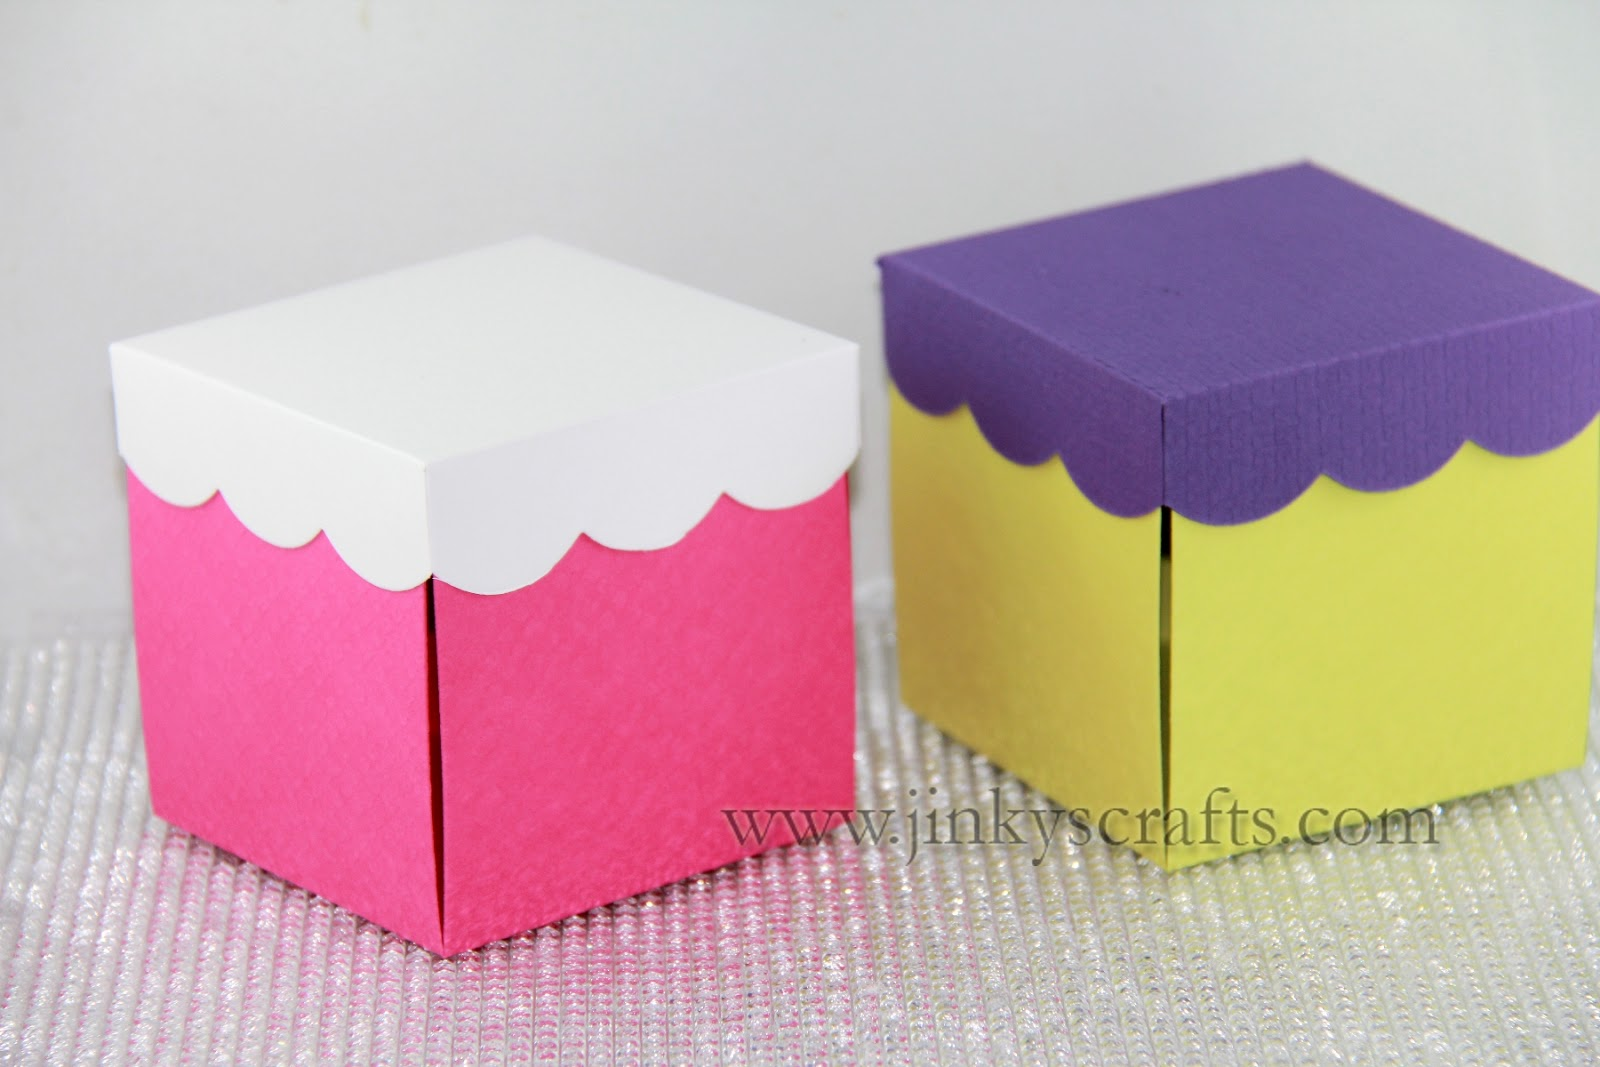 Jinkys crafts designs easter gift boxes exploding box kit available now negle Gallery